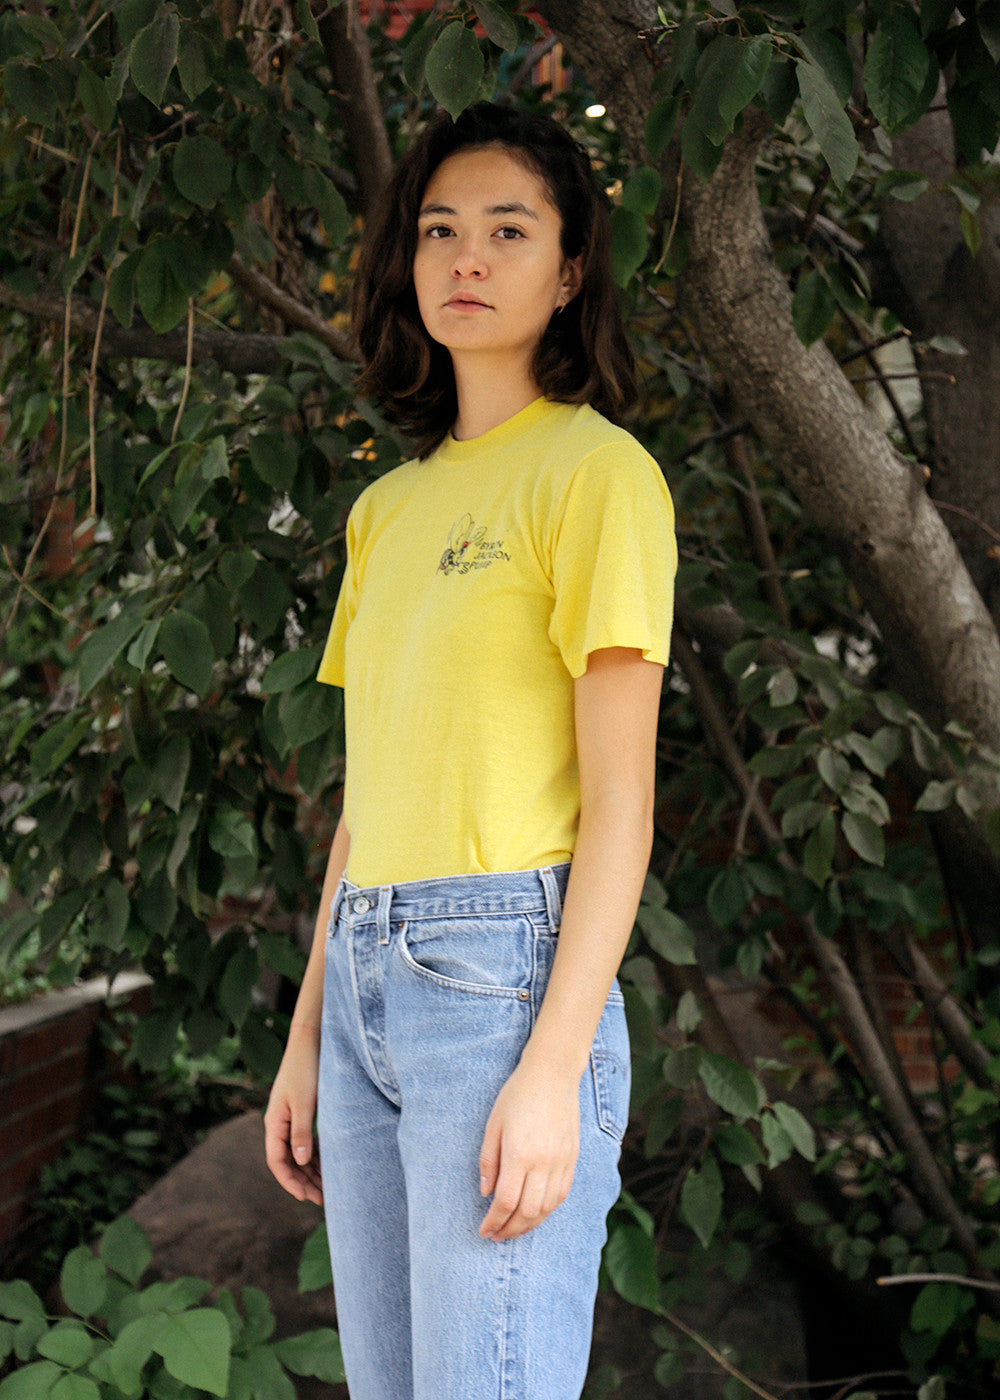 Denim Refinery Vintage Soft Tee 05 — Shop sustainable fashion and slow fashion at New Classics Studios